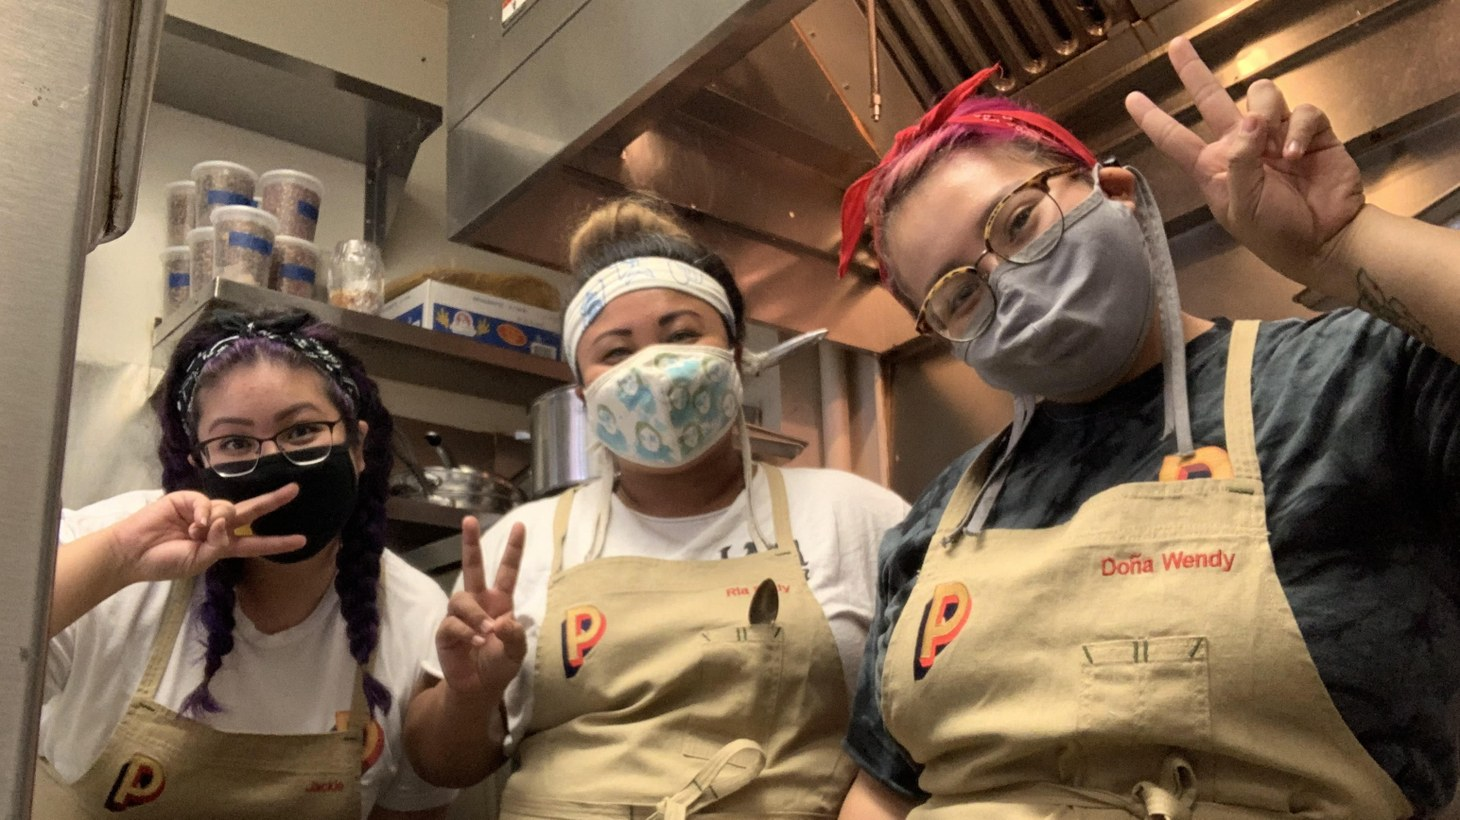 Ria Dolly Barbosa (center) and her team work in a 500 square foot space, turning out Filipino food with a modern twist at Petite Peso.